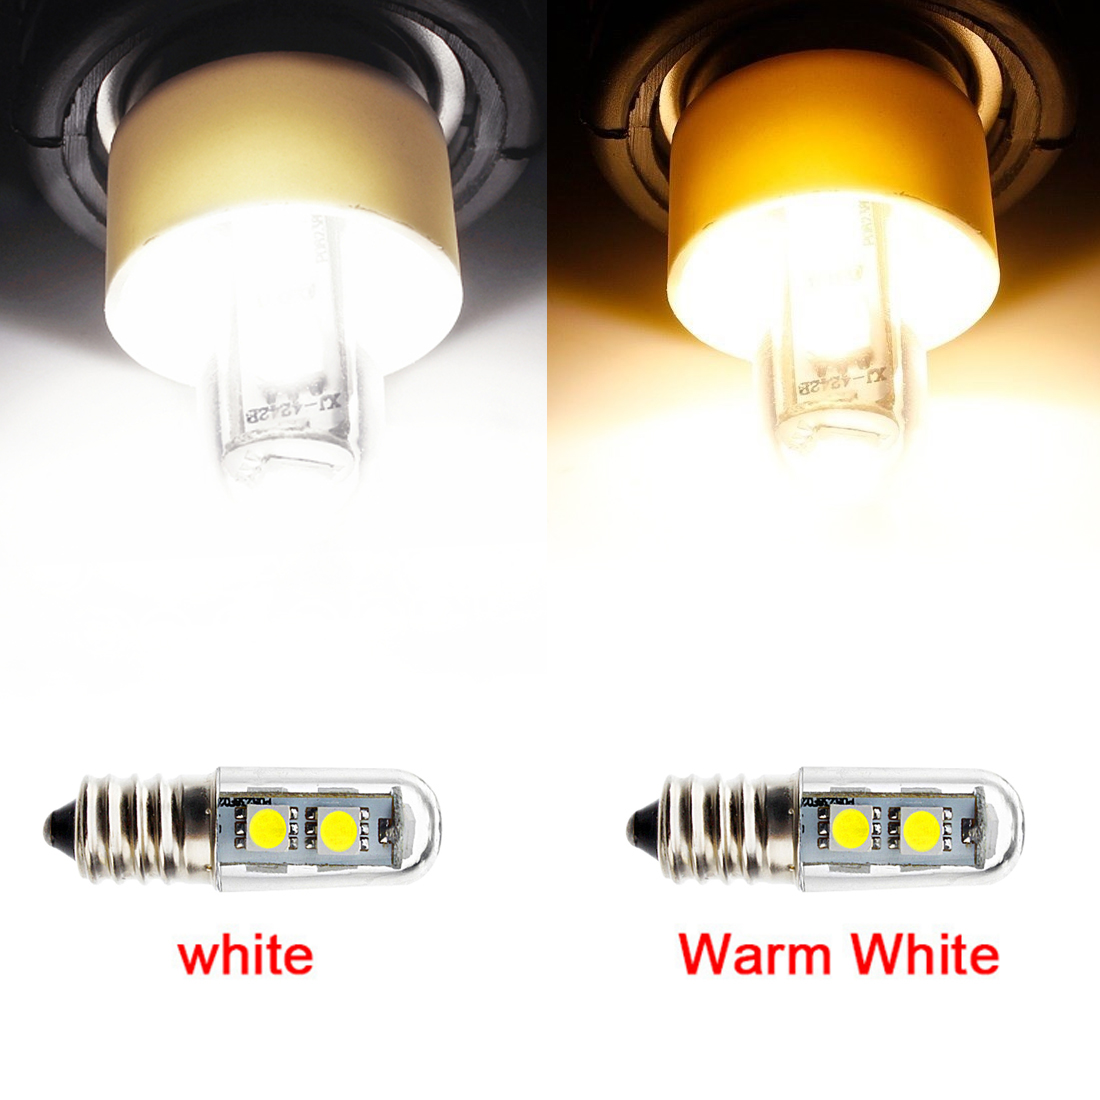 1PCS <font><b>Mini</b></font> <font><b>E14</b></font> <font><b>LED</b></font> <font><b>Lamps</b></font> 5050 SMD 1W Crystal Chandelier 110/220V Spotlight Corn Bulbs Pendant Fridge <font><b>Refrigerator</b></font> Light image